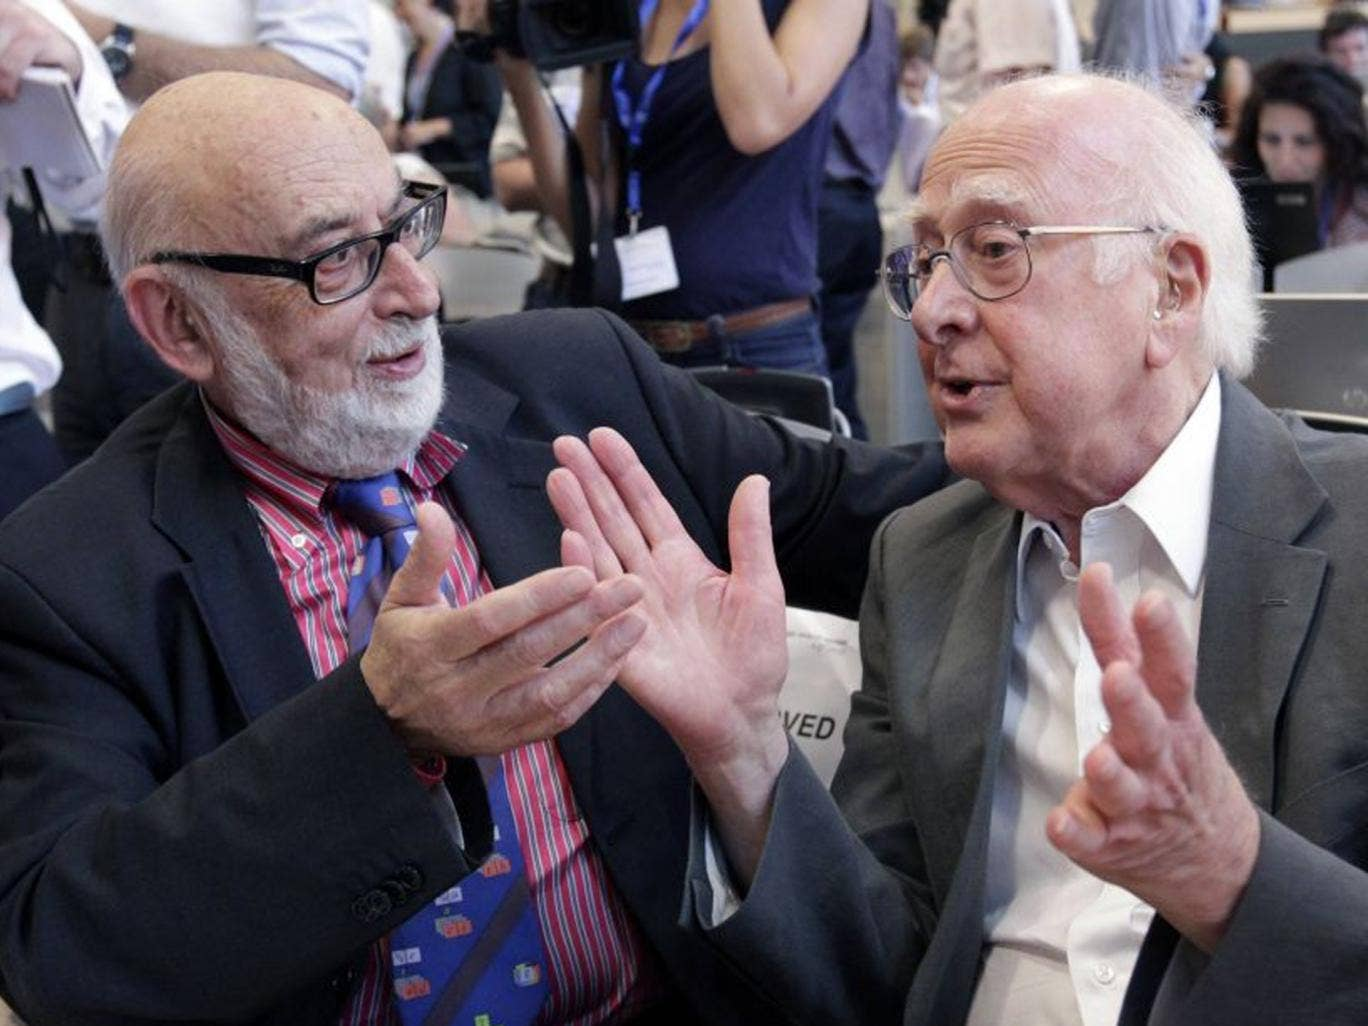 British physicist Peter Higgs with Belgium physicist Francois Englert